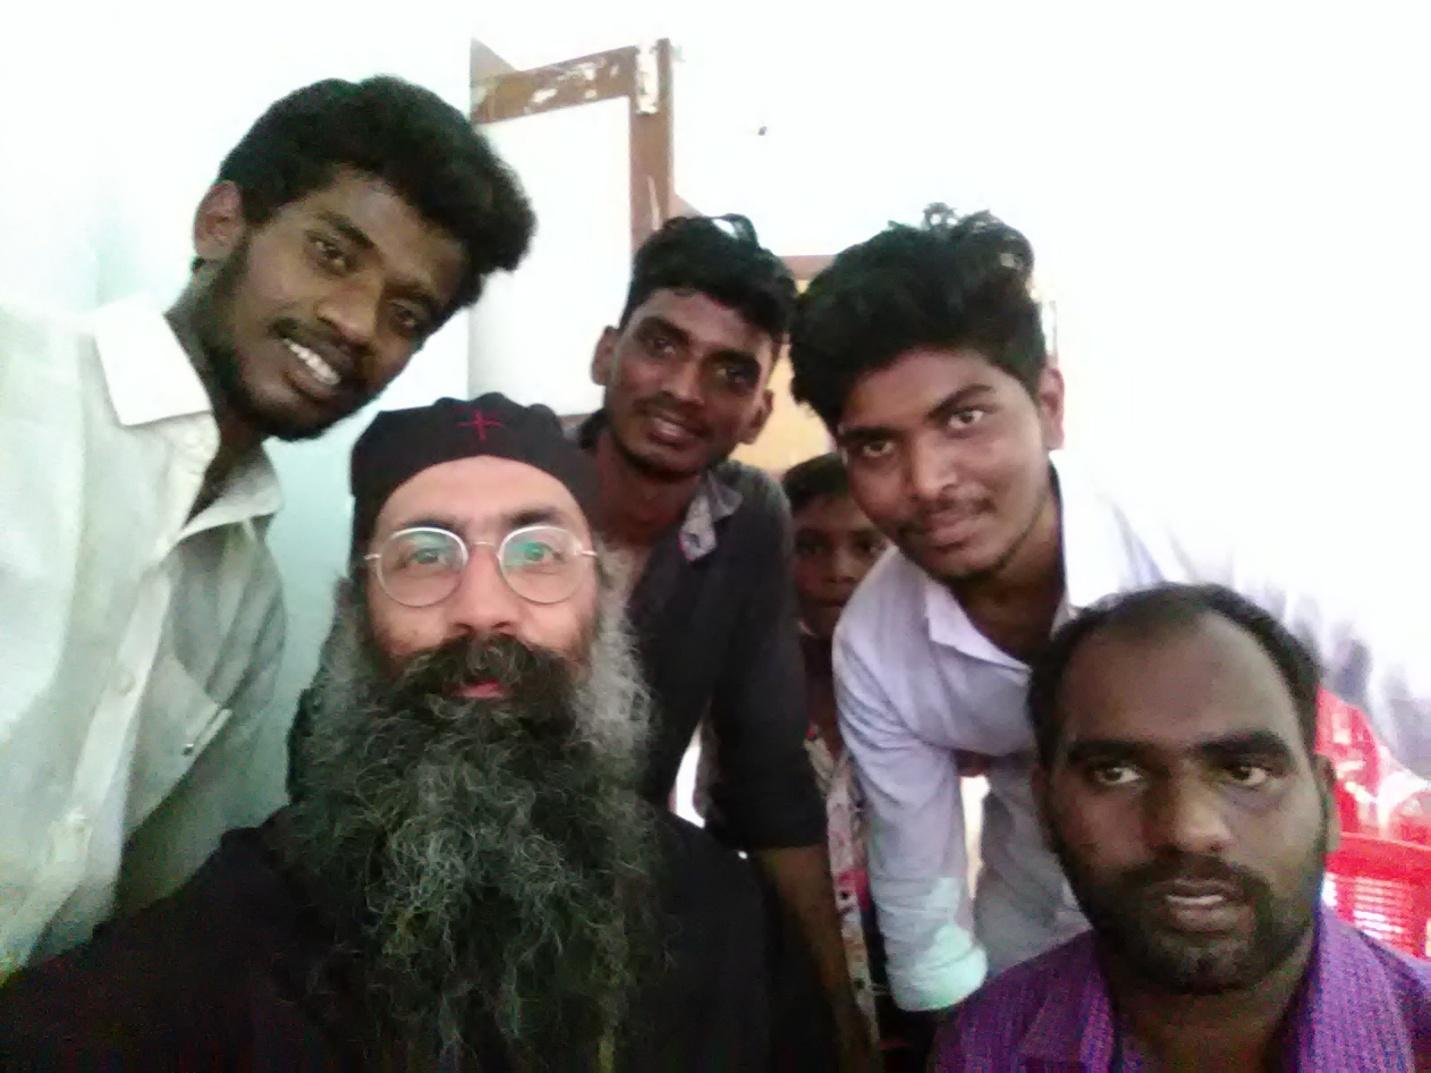 A selfie with some of the guys at the conference